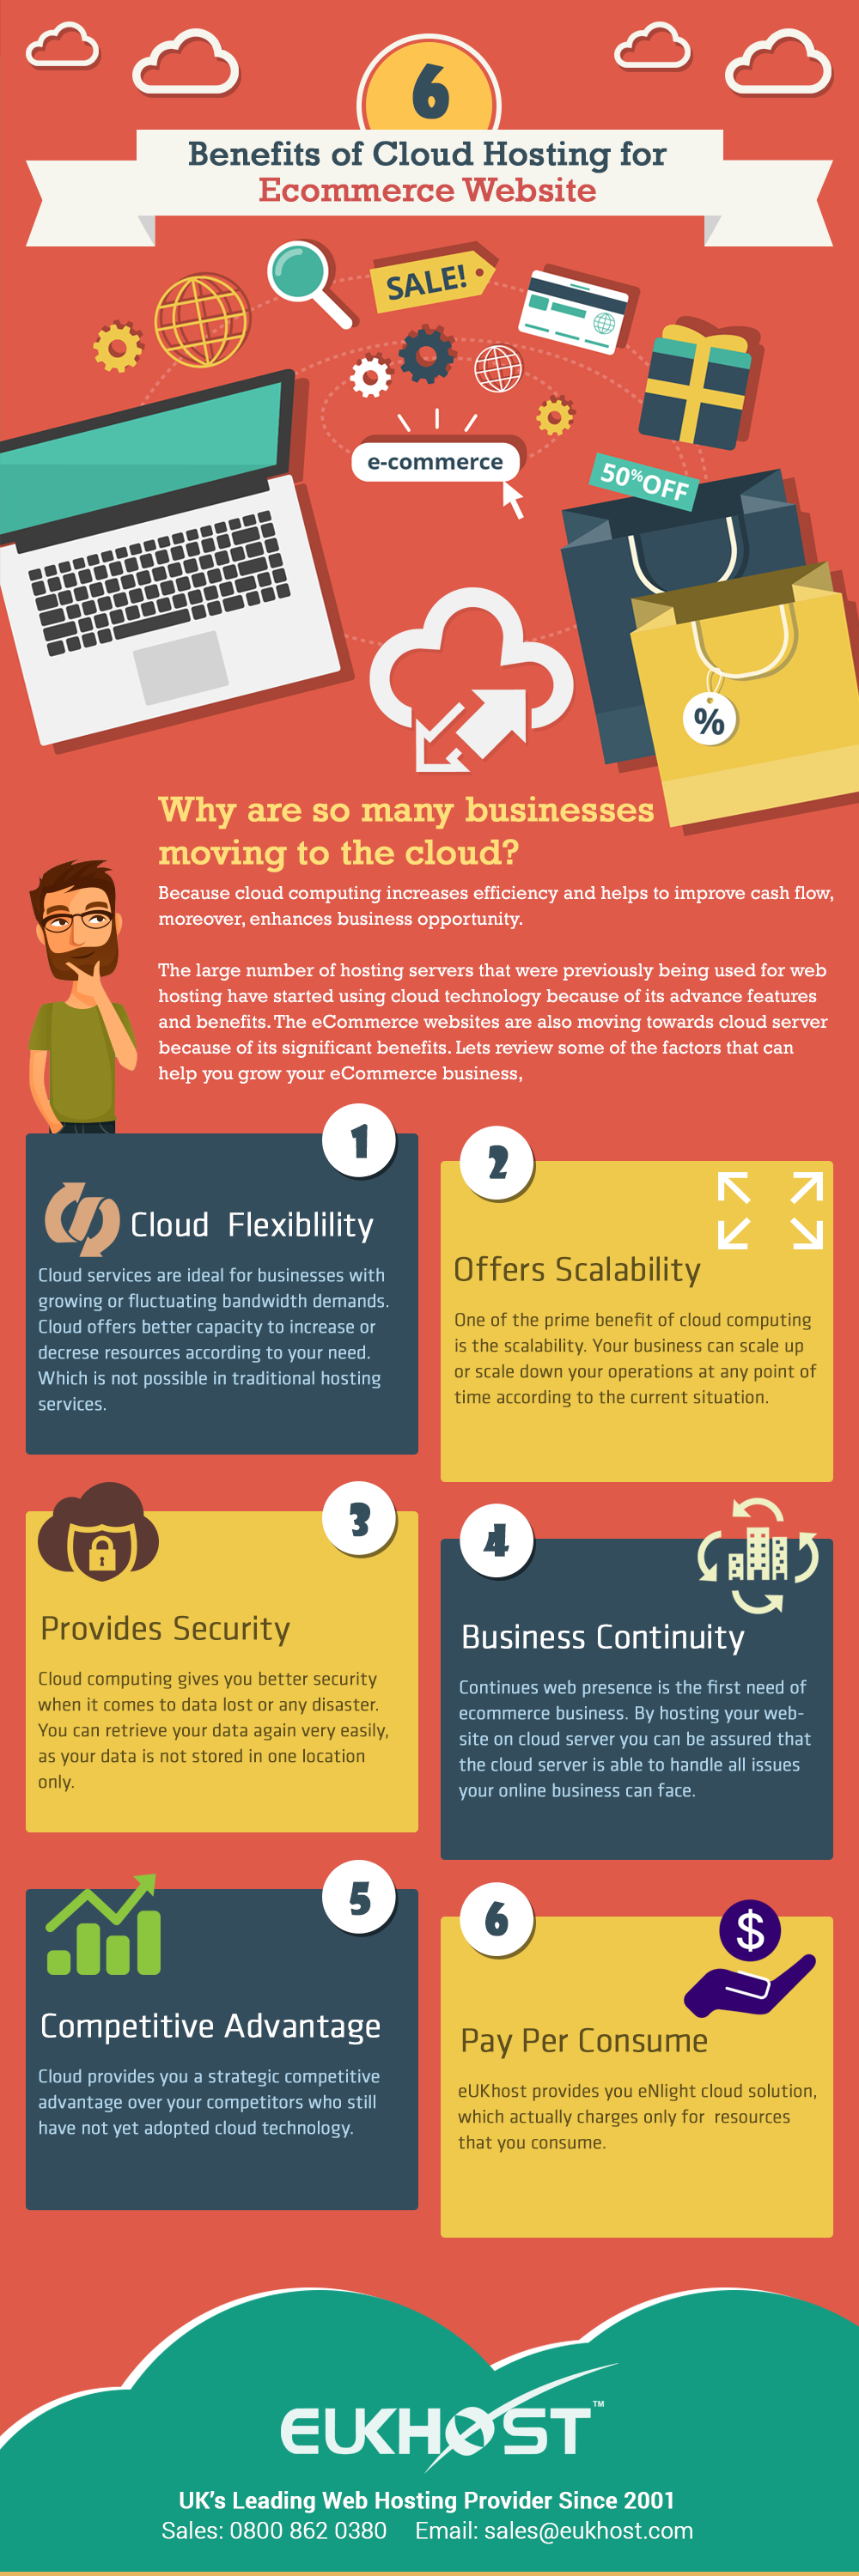 Top 6 Benefits of Cloud Hosting You Need For ECommerce Website